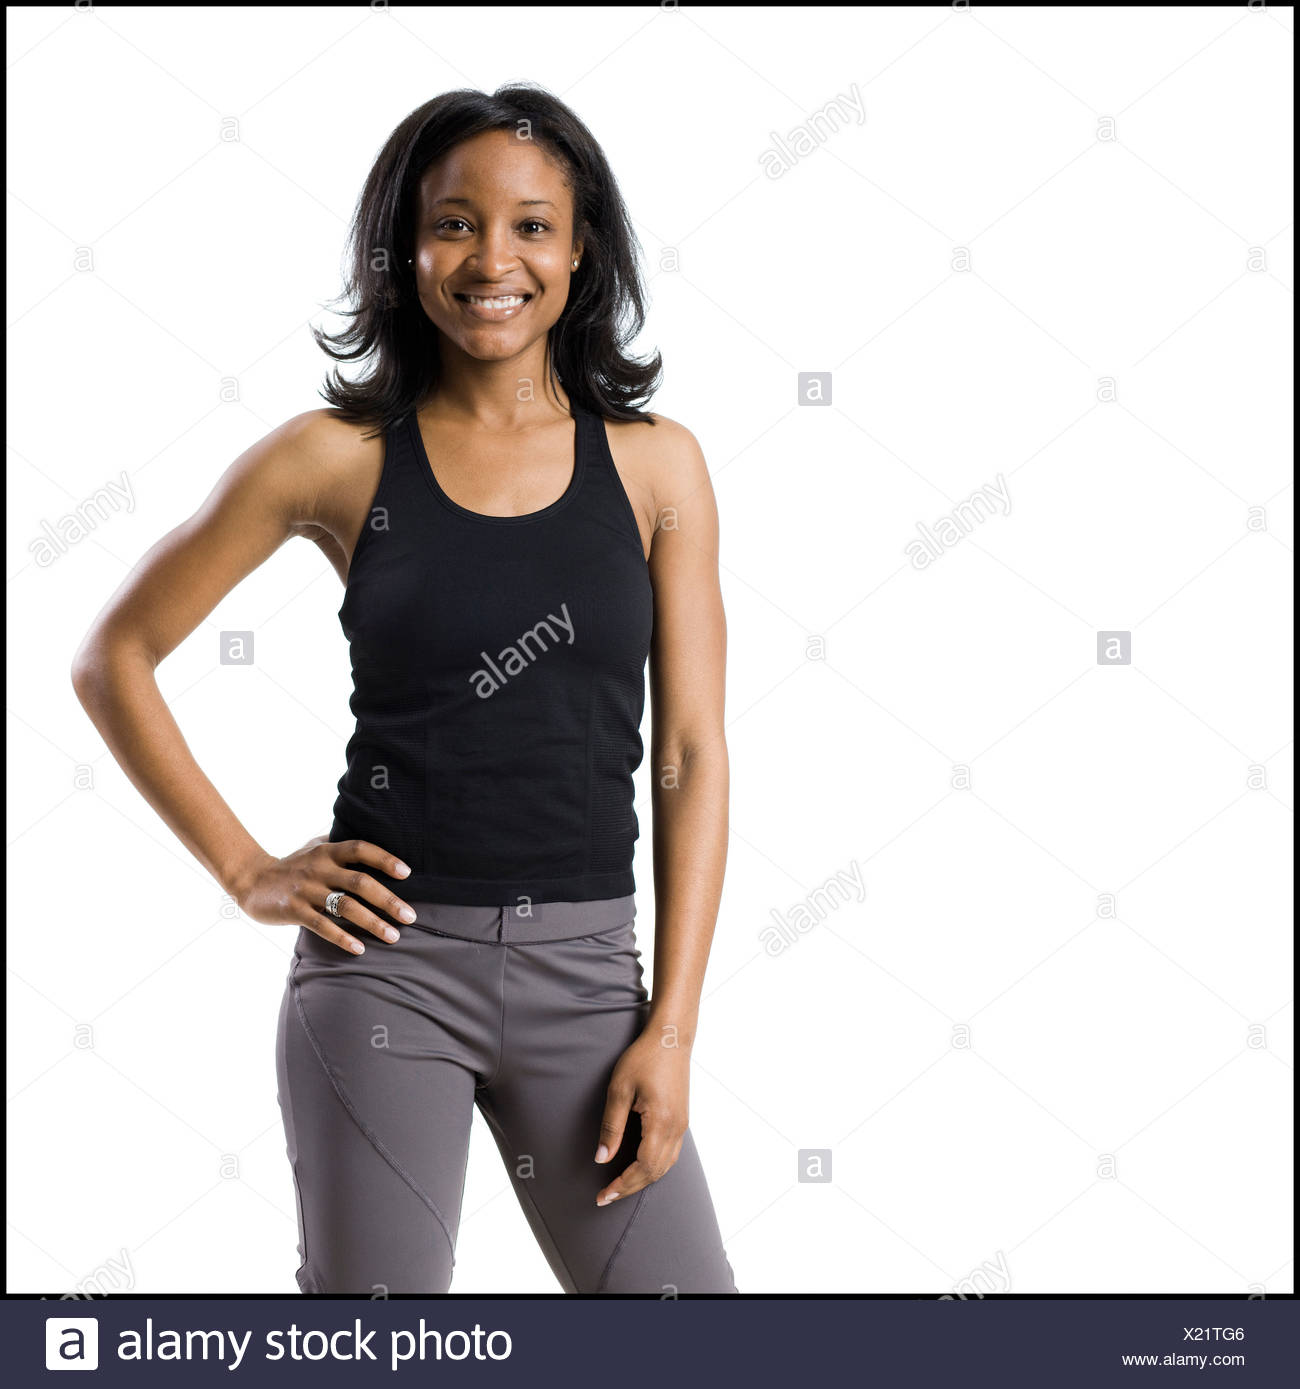 woman in work out clothes - Stock Image